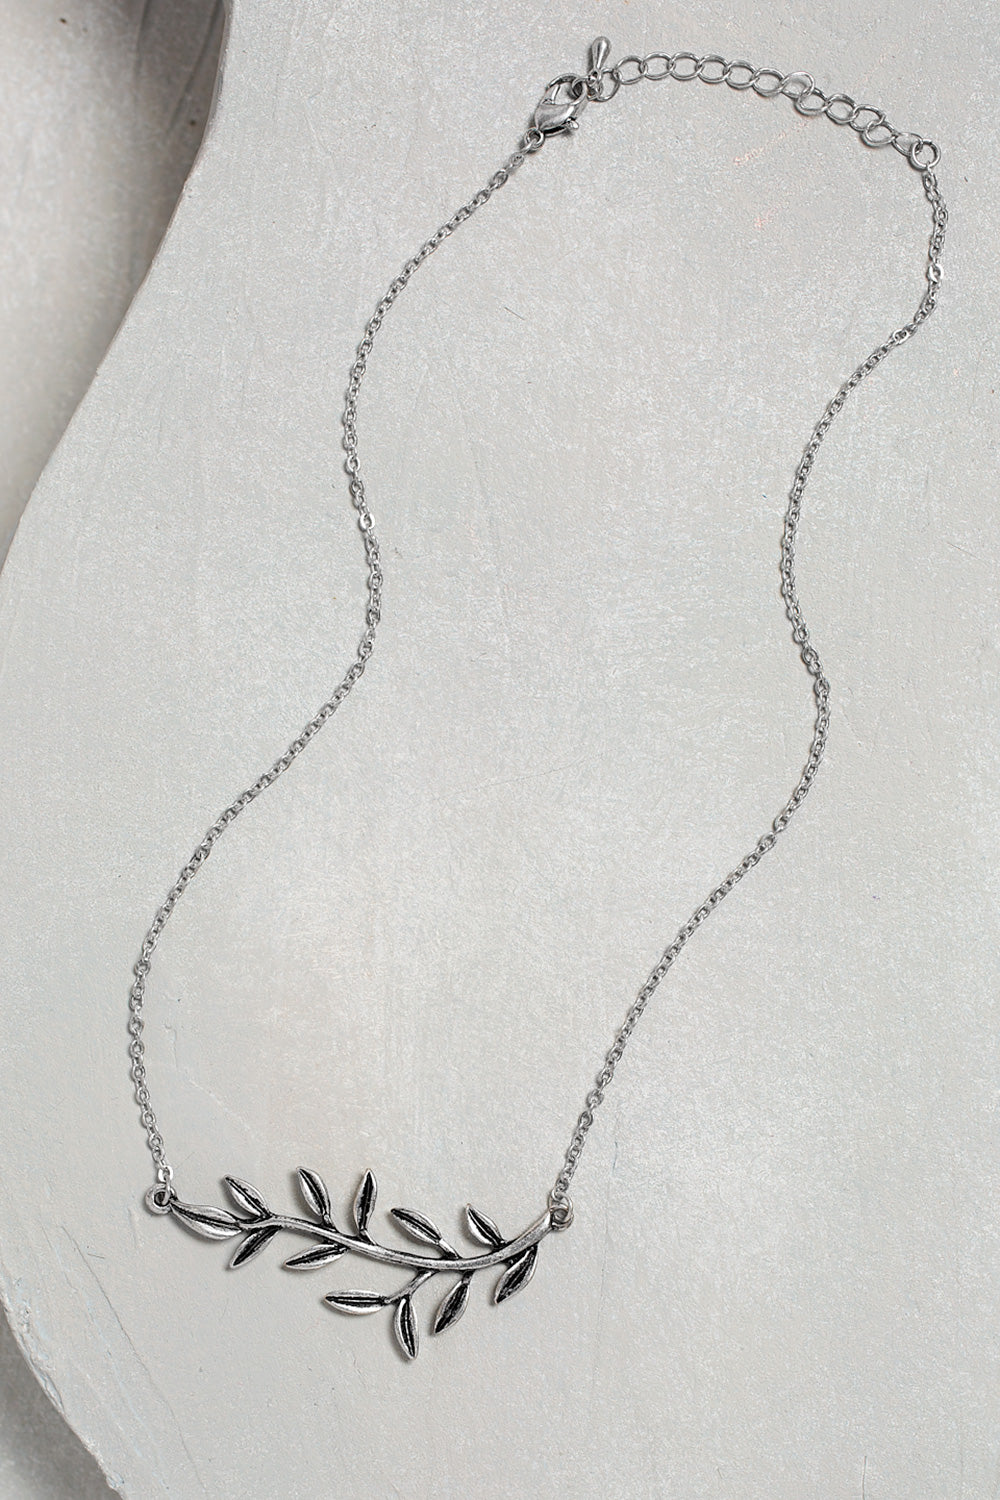 Type 2 Olive Branch Necklace